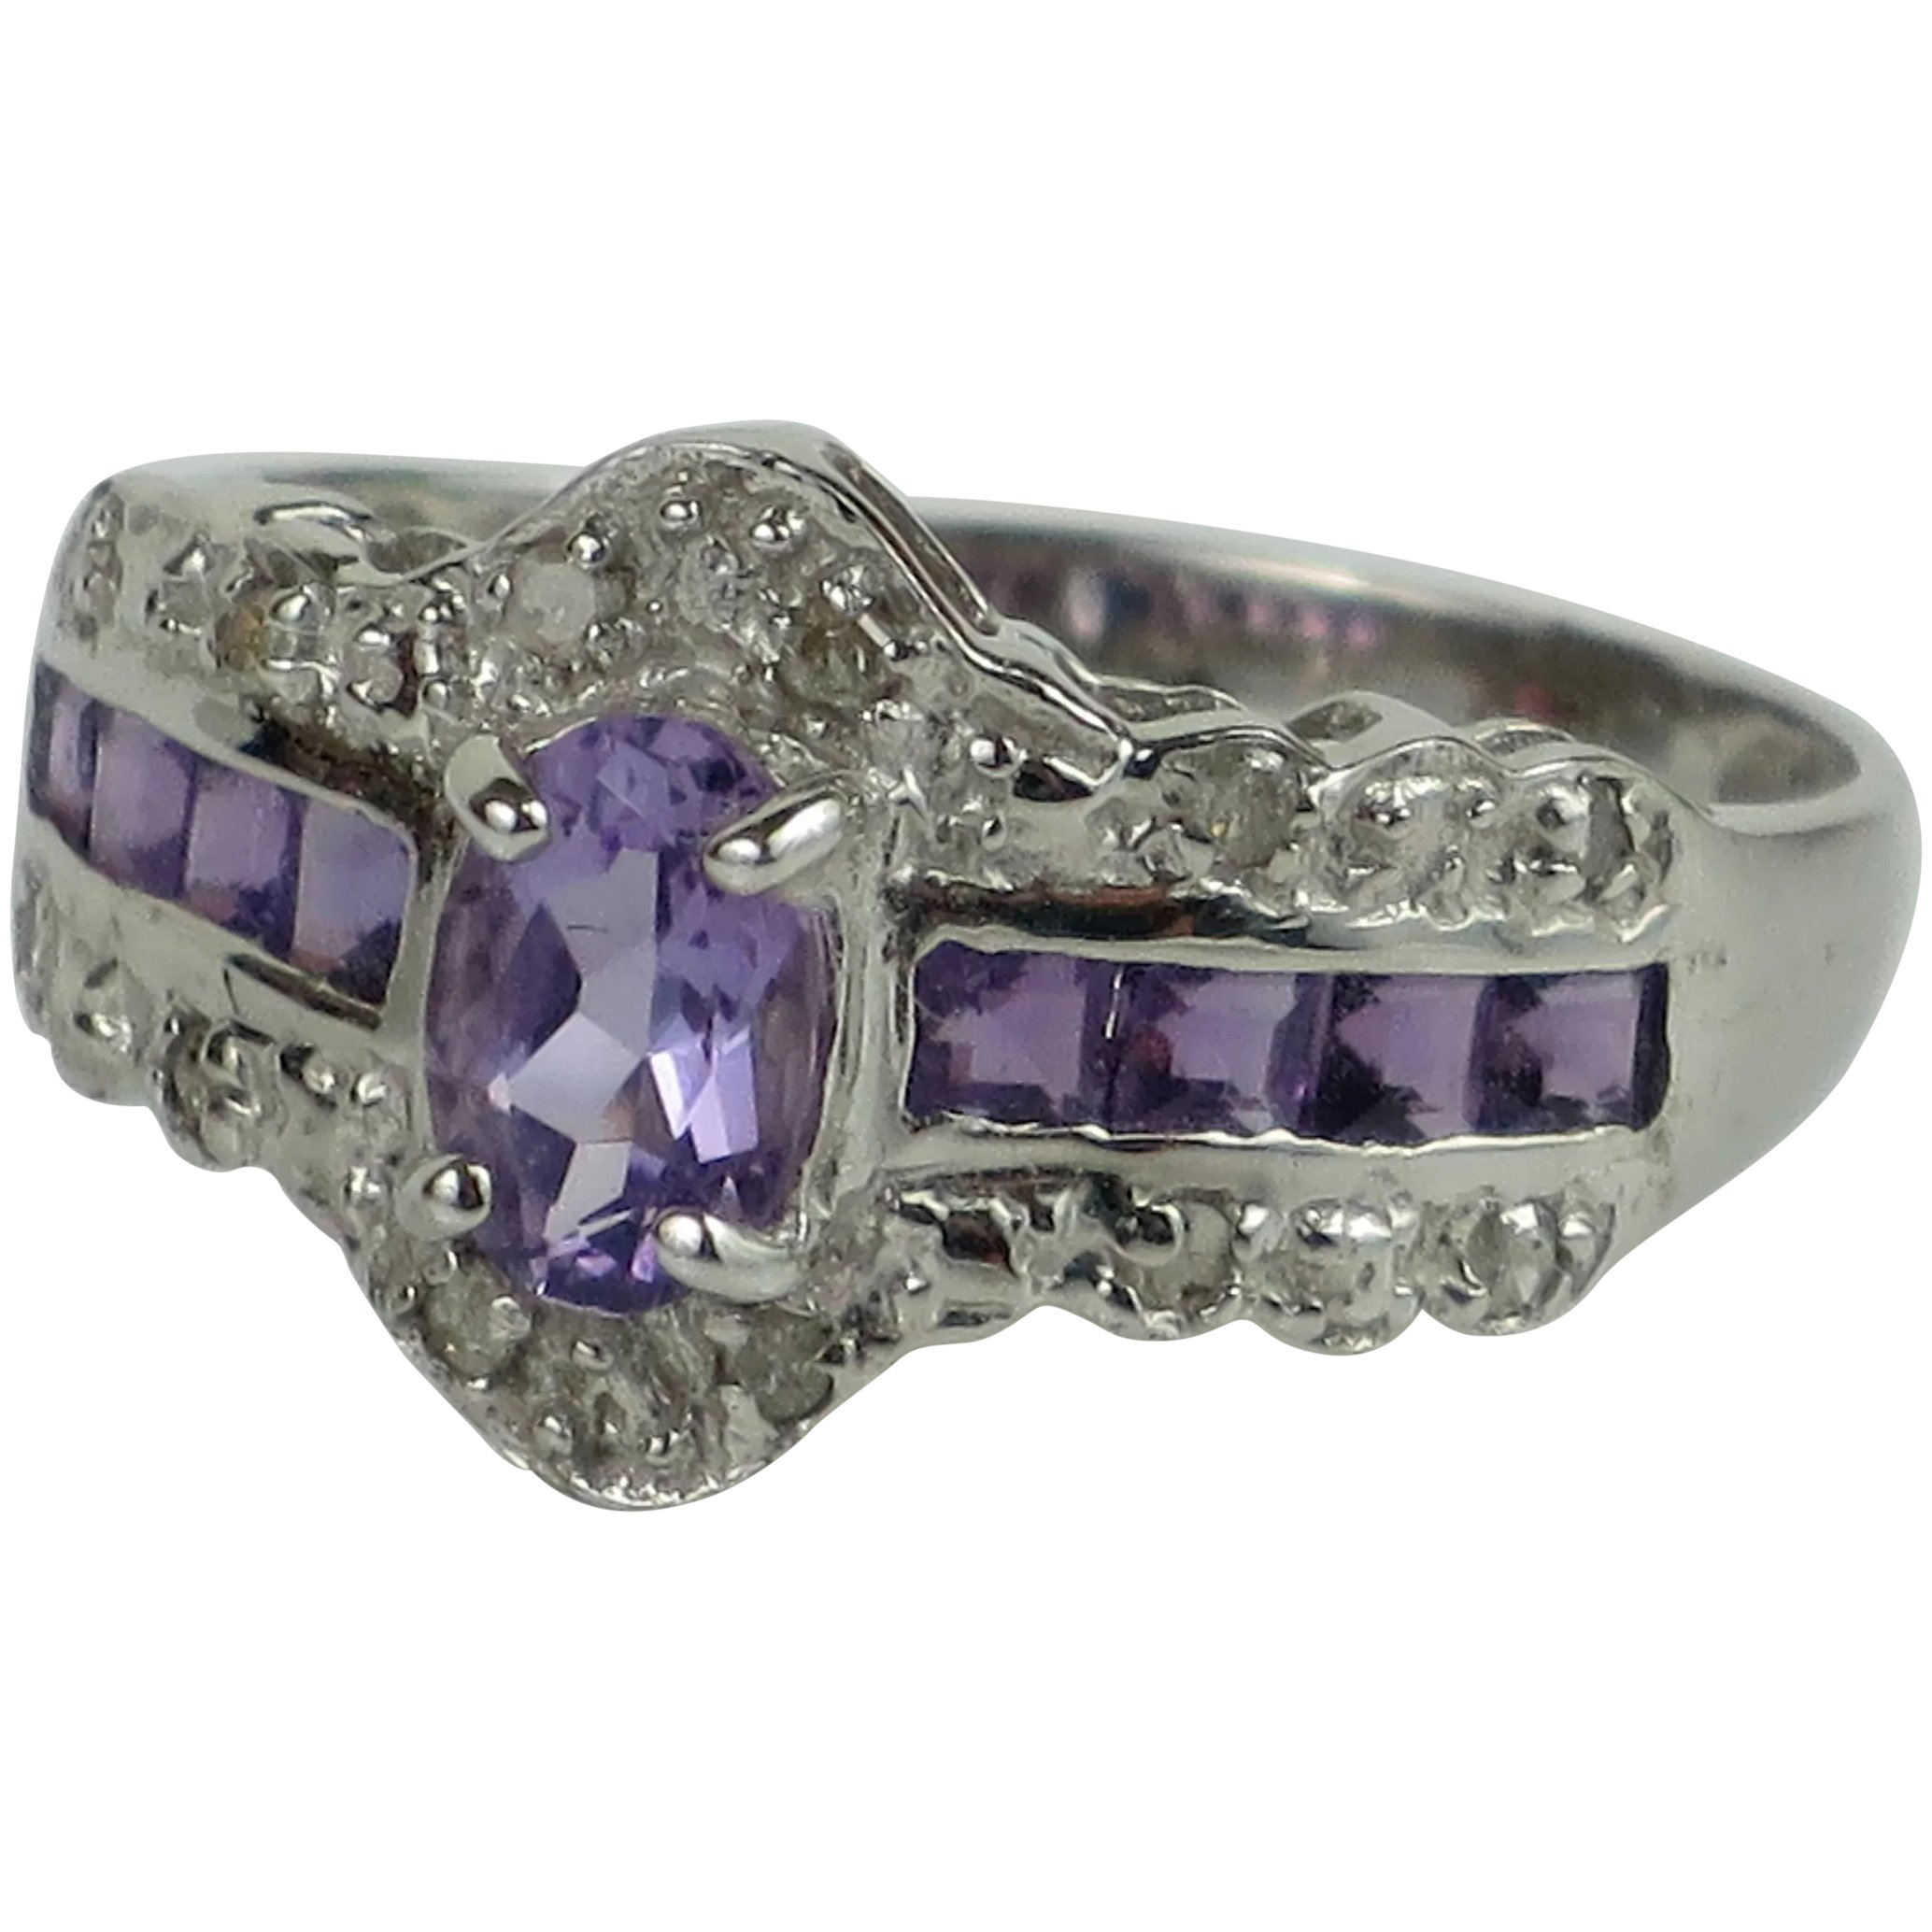 Pretty Vintage New 10K Yellow Gold Dark Amethyst Signature  Birthstone Ring with Double Shank Design Weighs 1.41 g Size 6.5